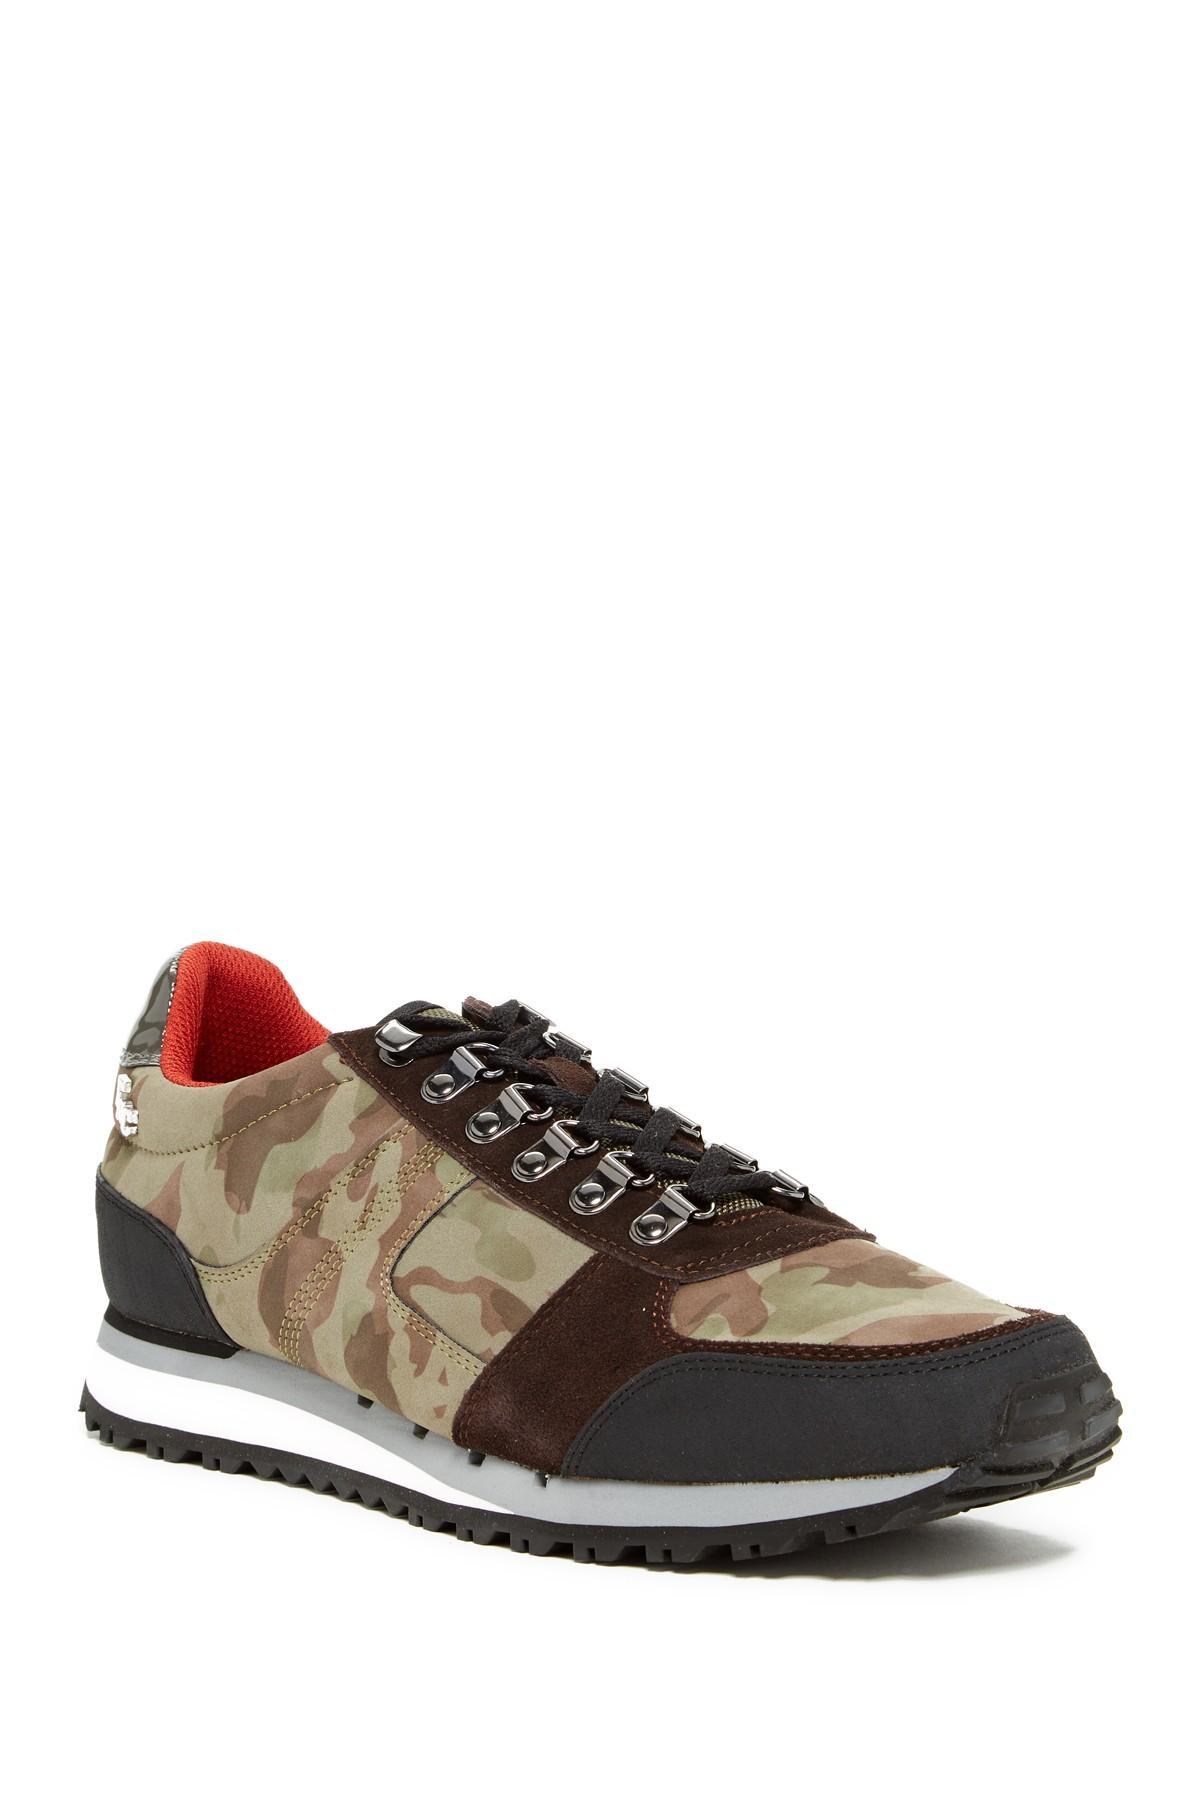 Lyst fish n chips panini sneaker in brown for men for Fish and chips shoes